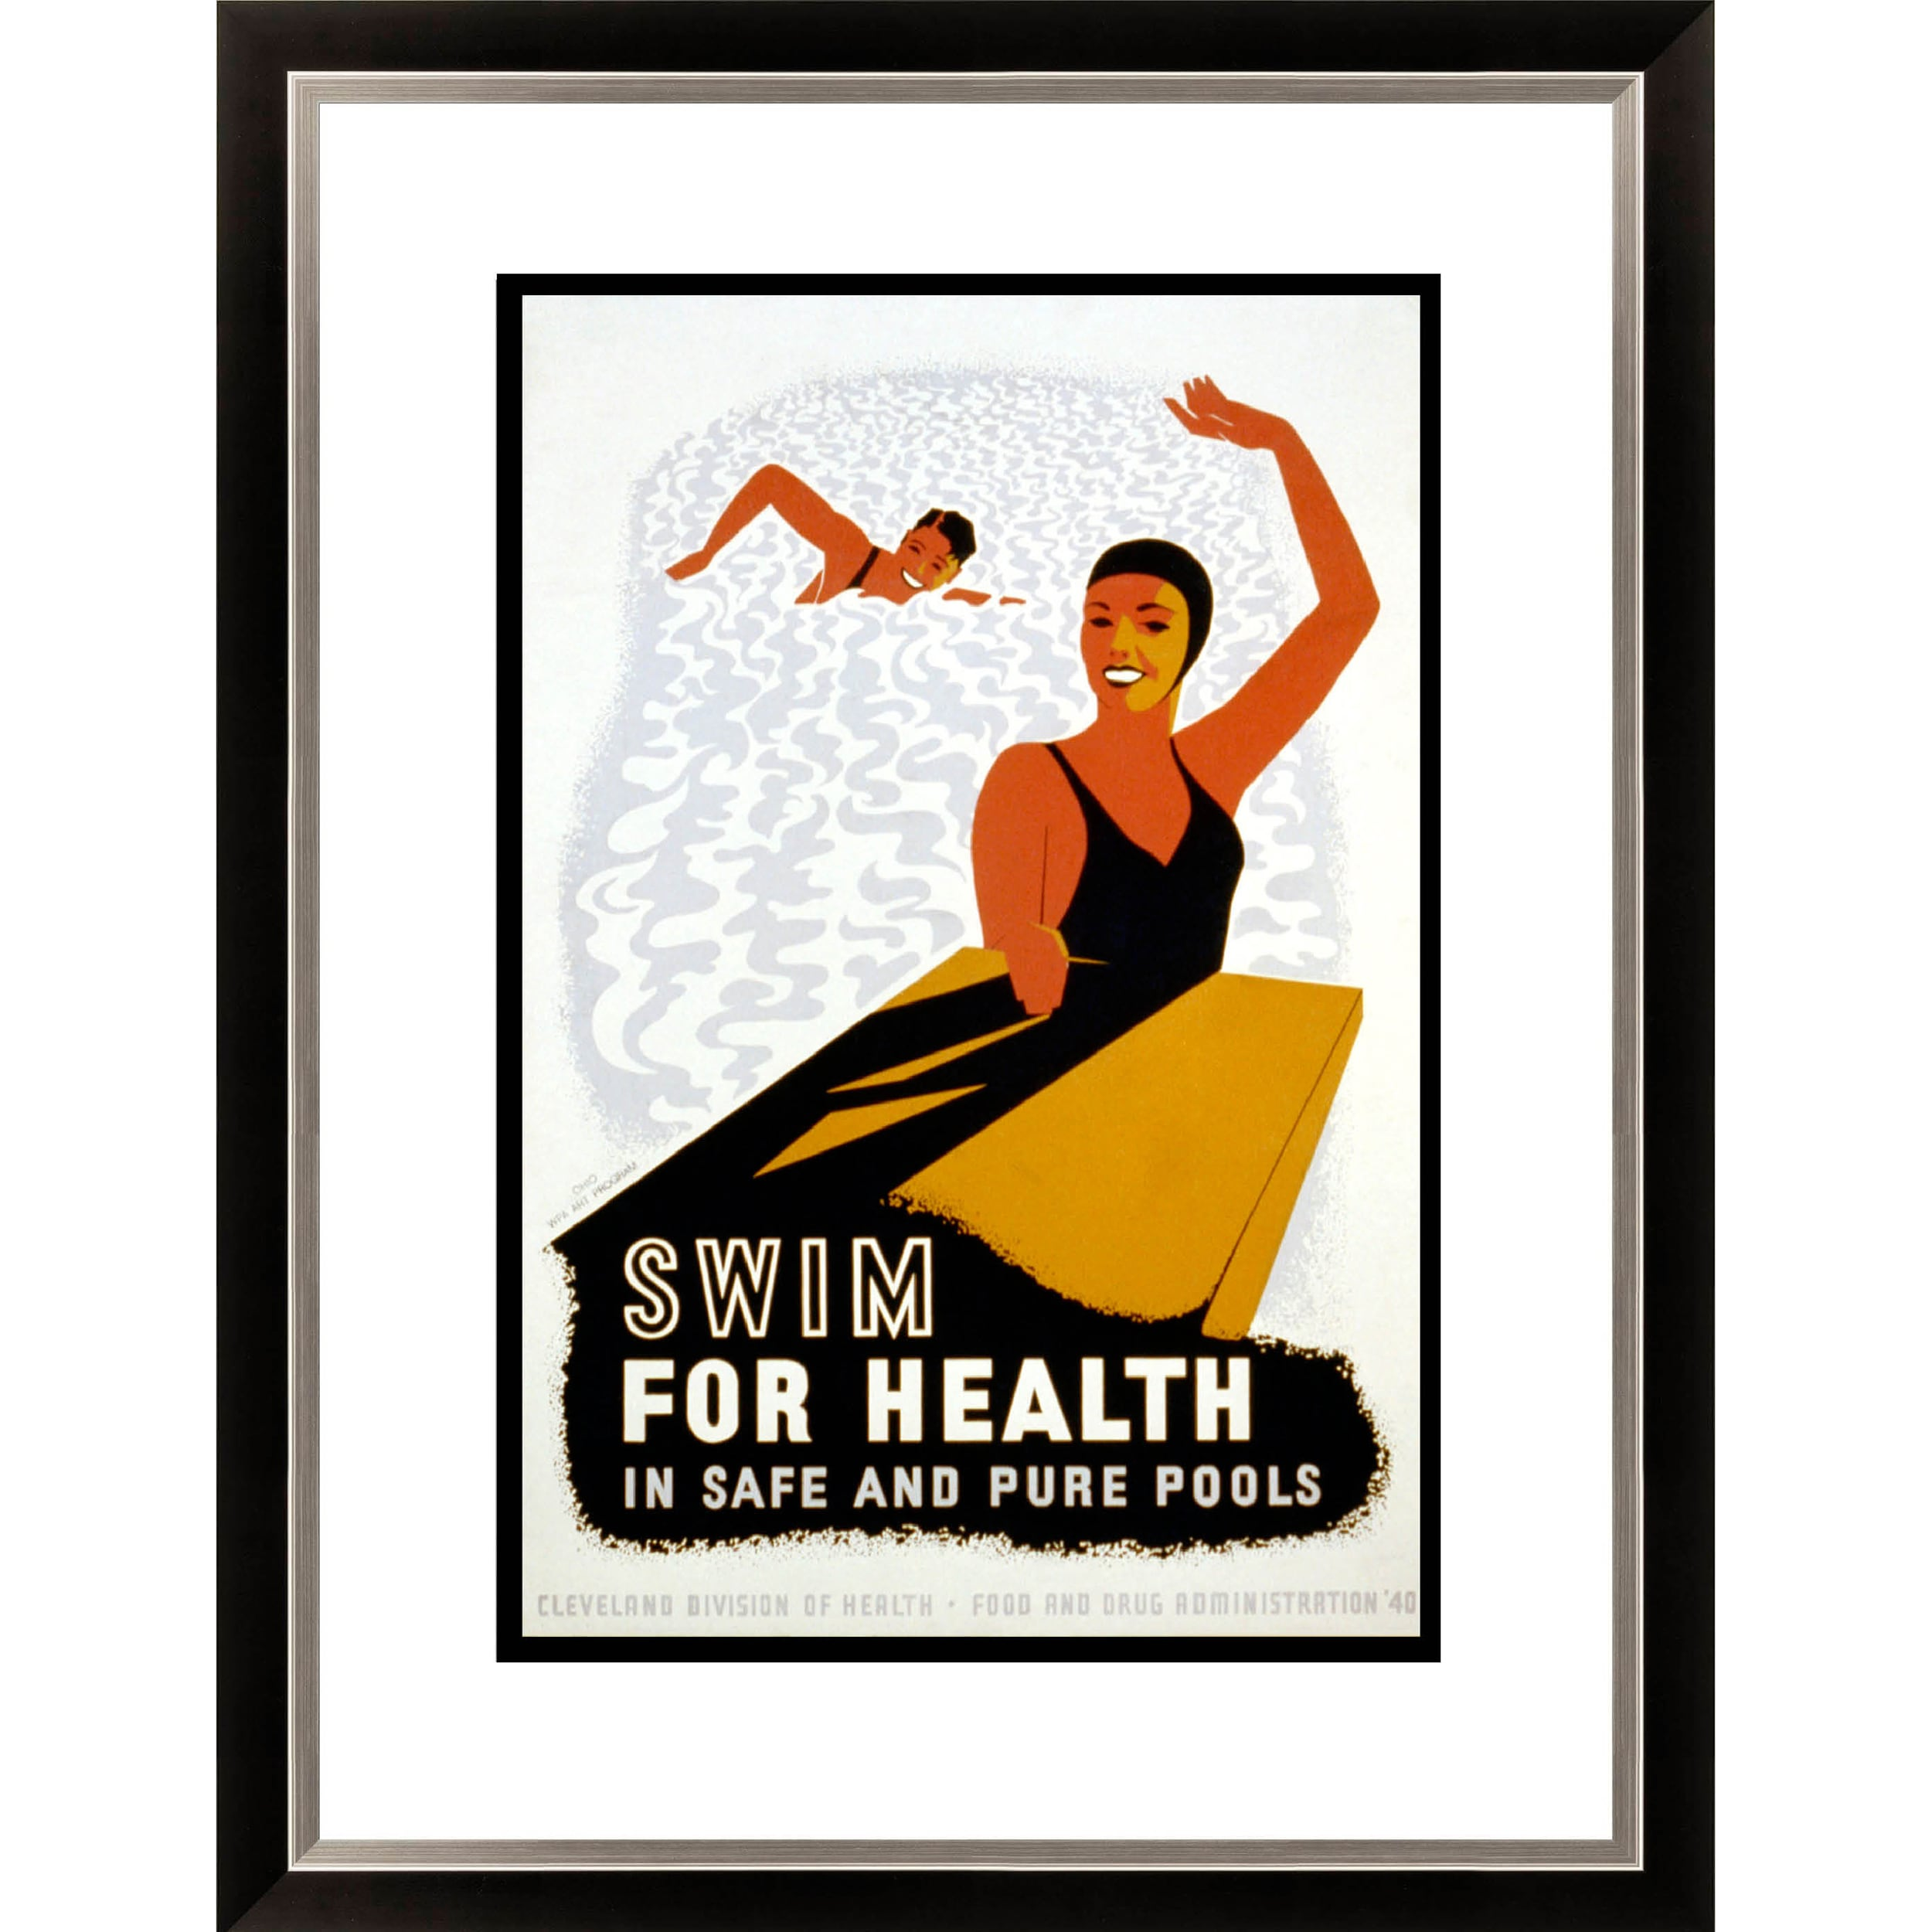 'Swim for Health in Safe and Pure Pools' Framed Limited Edition Giclee